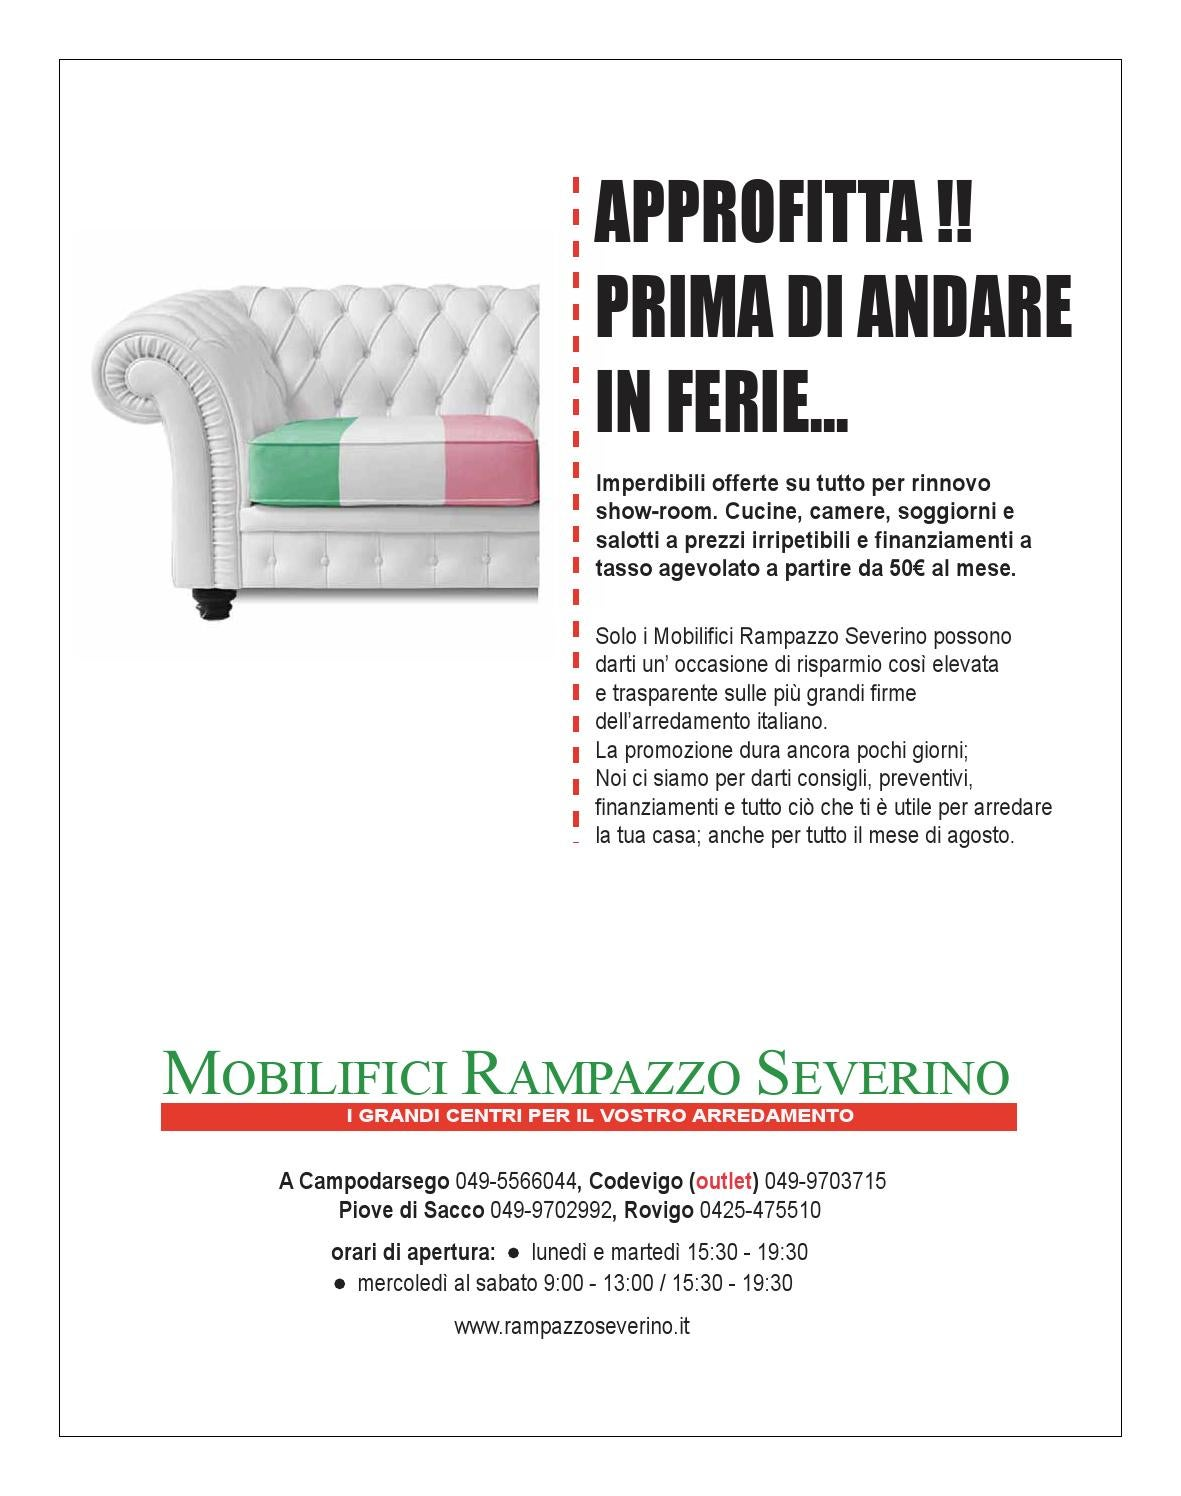 Piovese giu2013 n75 by lapiazza give emotions - issuu